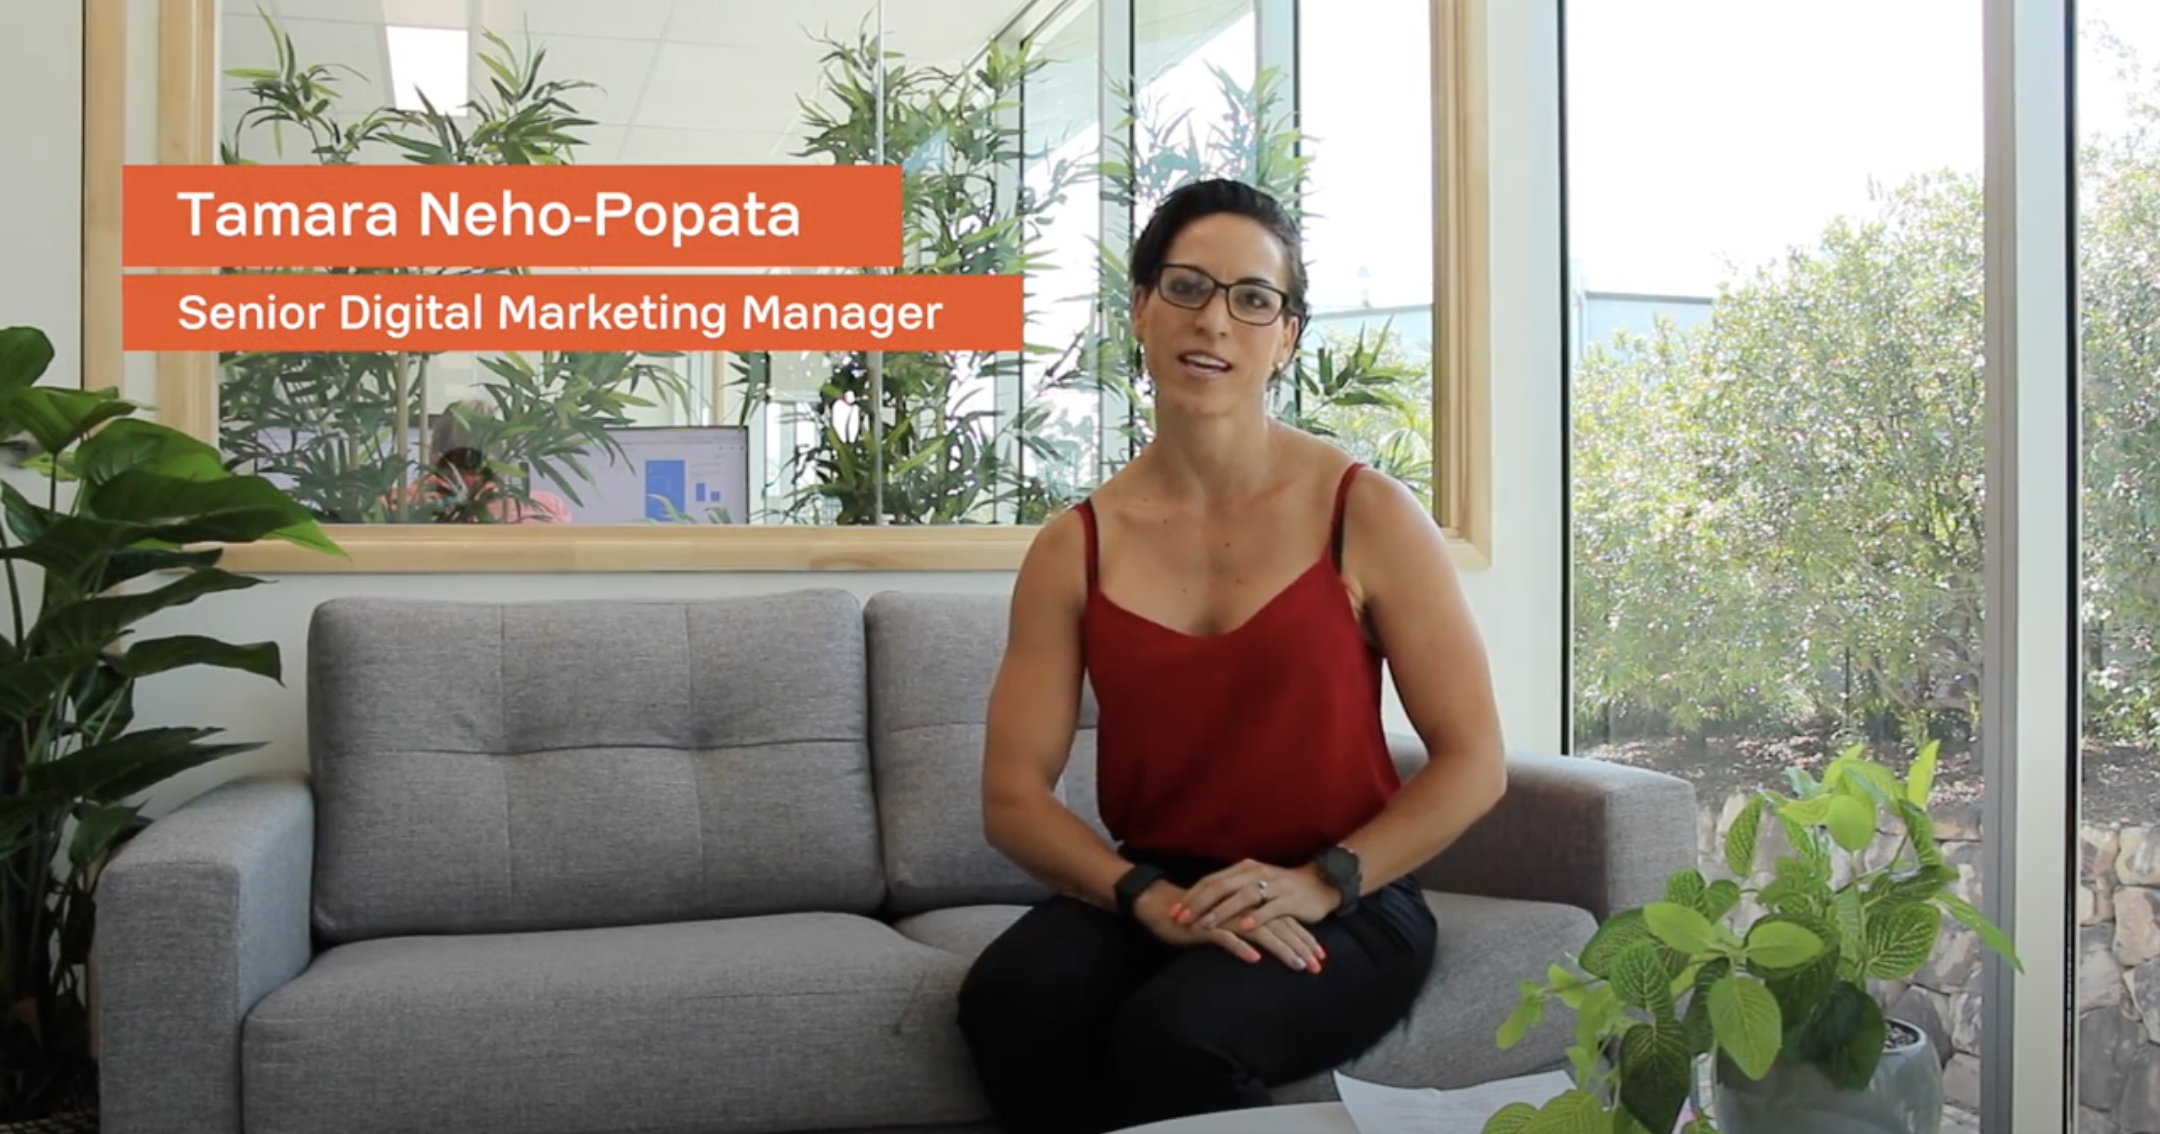 Tamara Neho-Popata discusses how to determine your usp